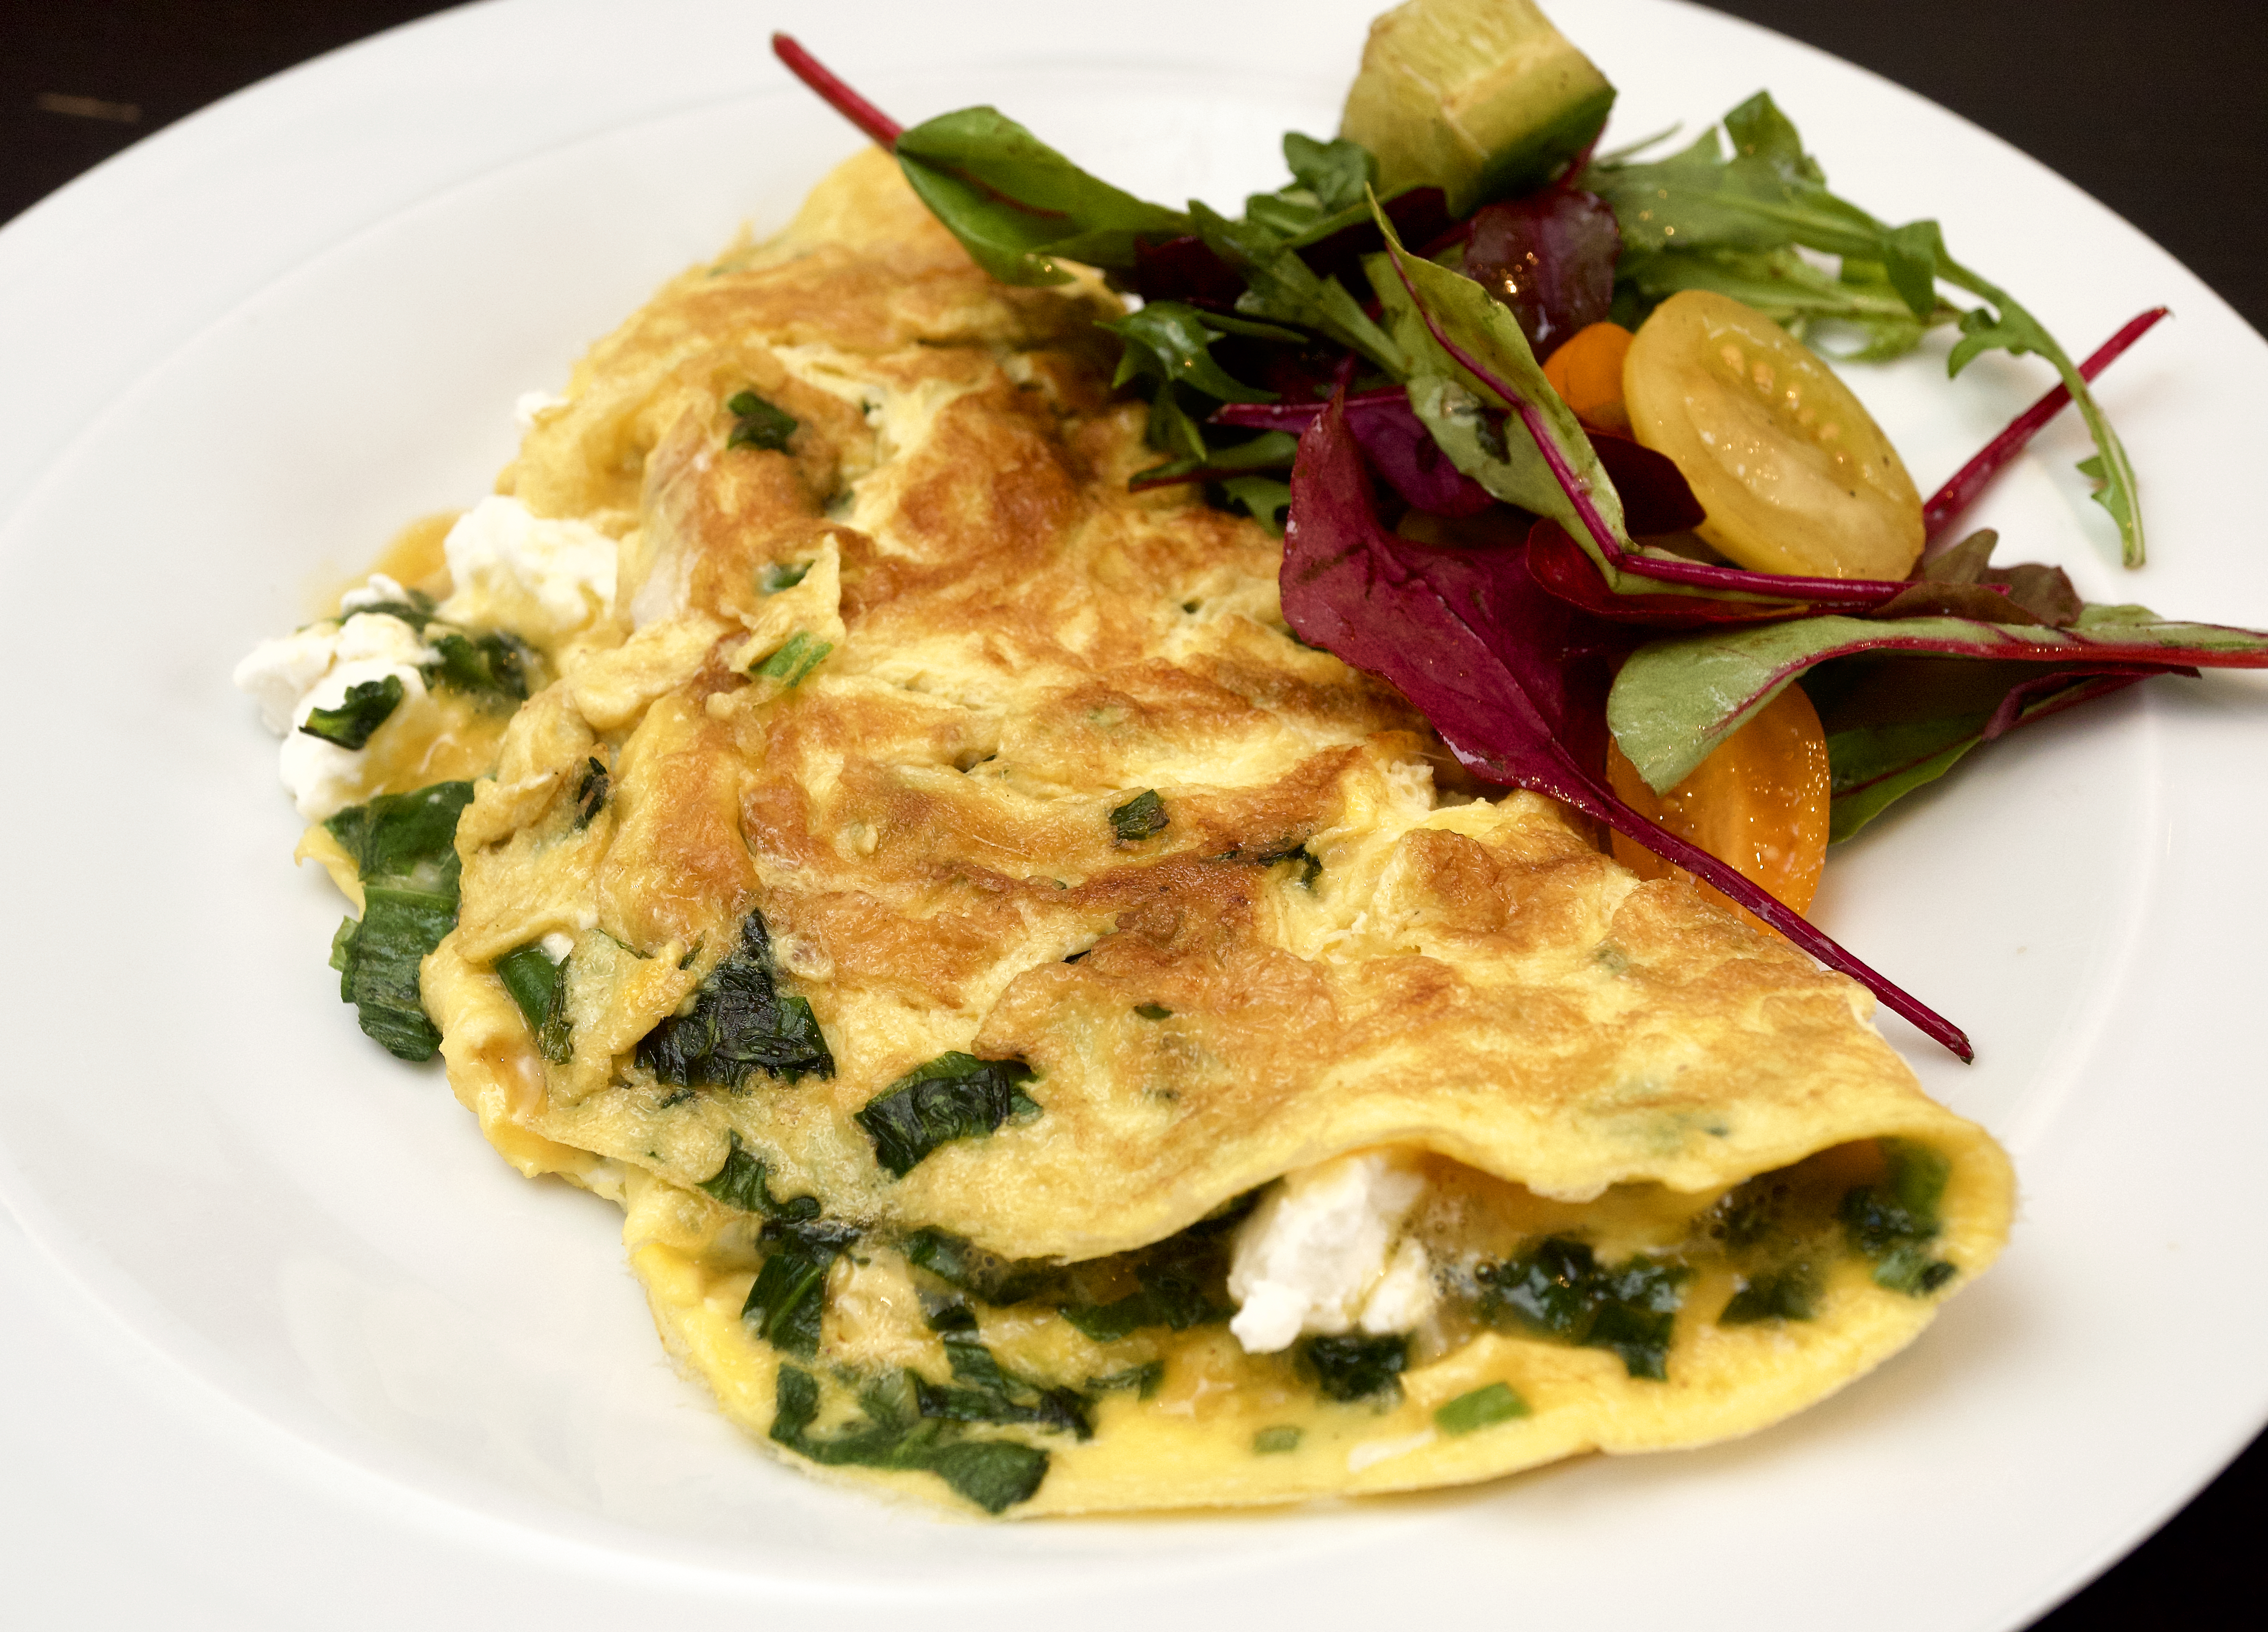 Wild Garlic Omelette with goats cheese